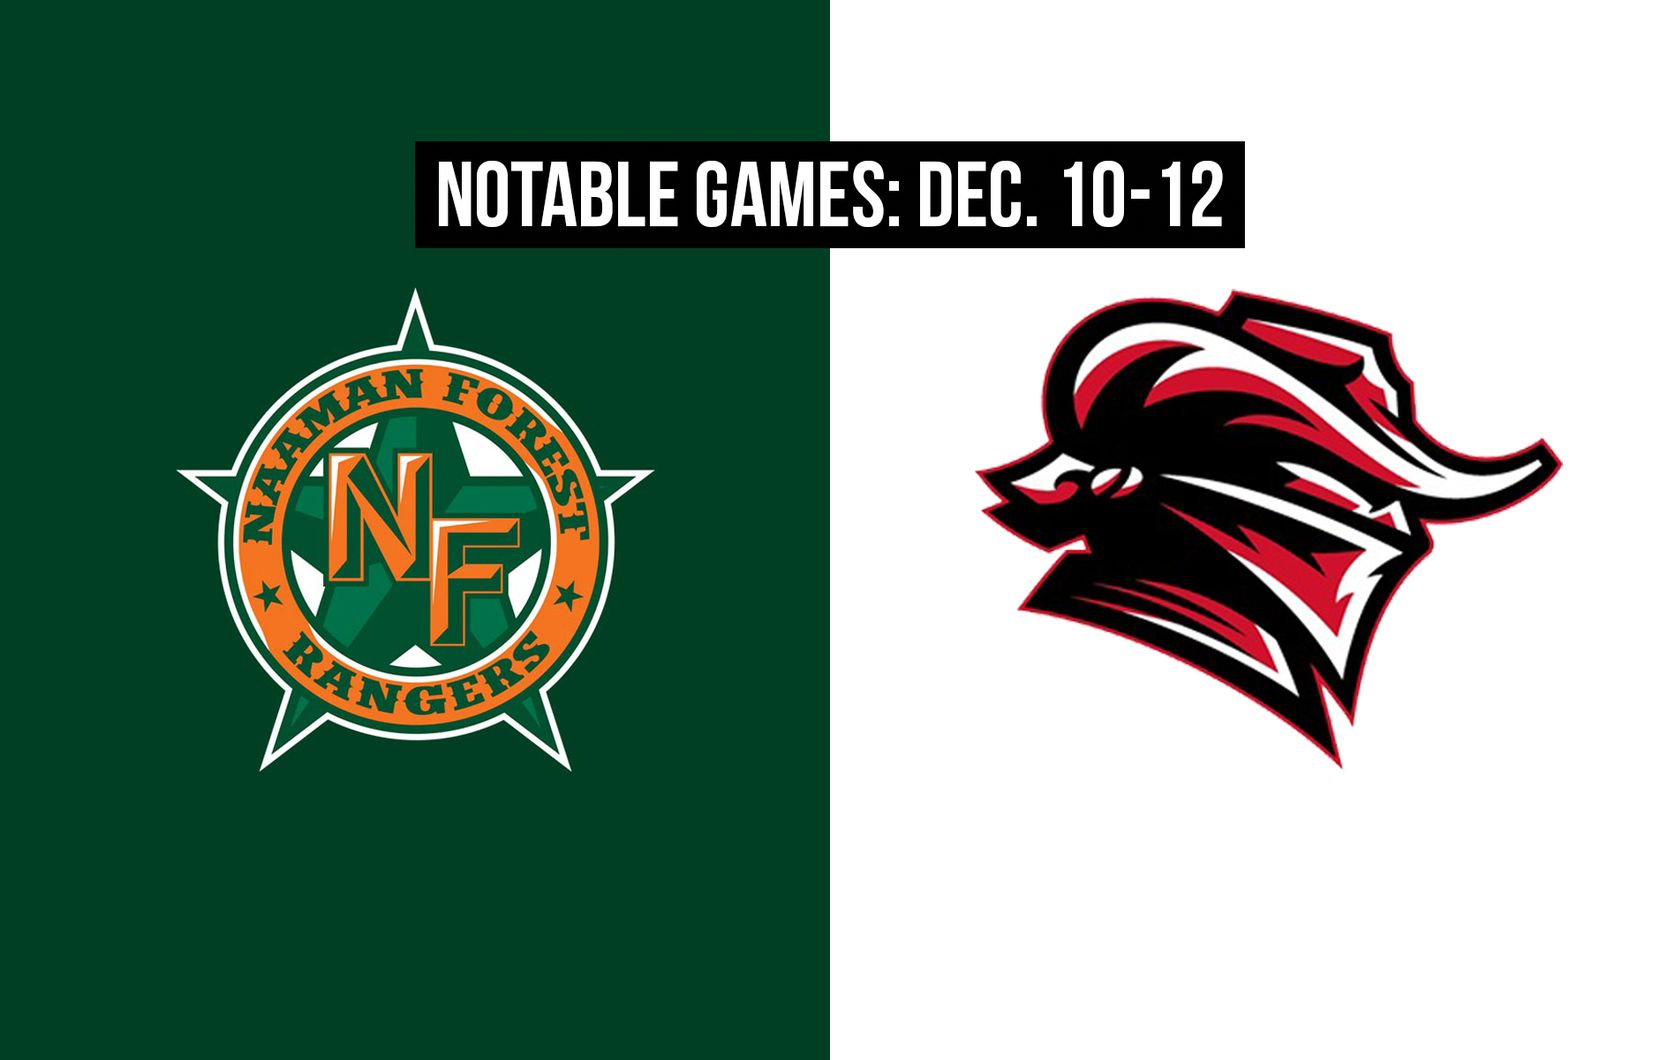 Notable games for the week of Dec. 10-12 of the 2020 season: Garland Naaman Forest vs. Tyler Legacy.